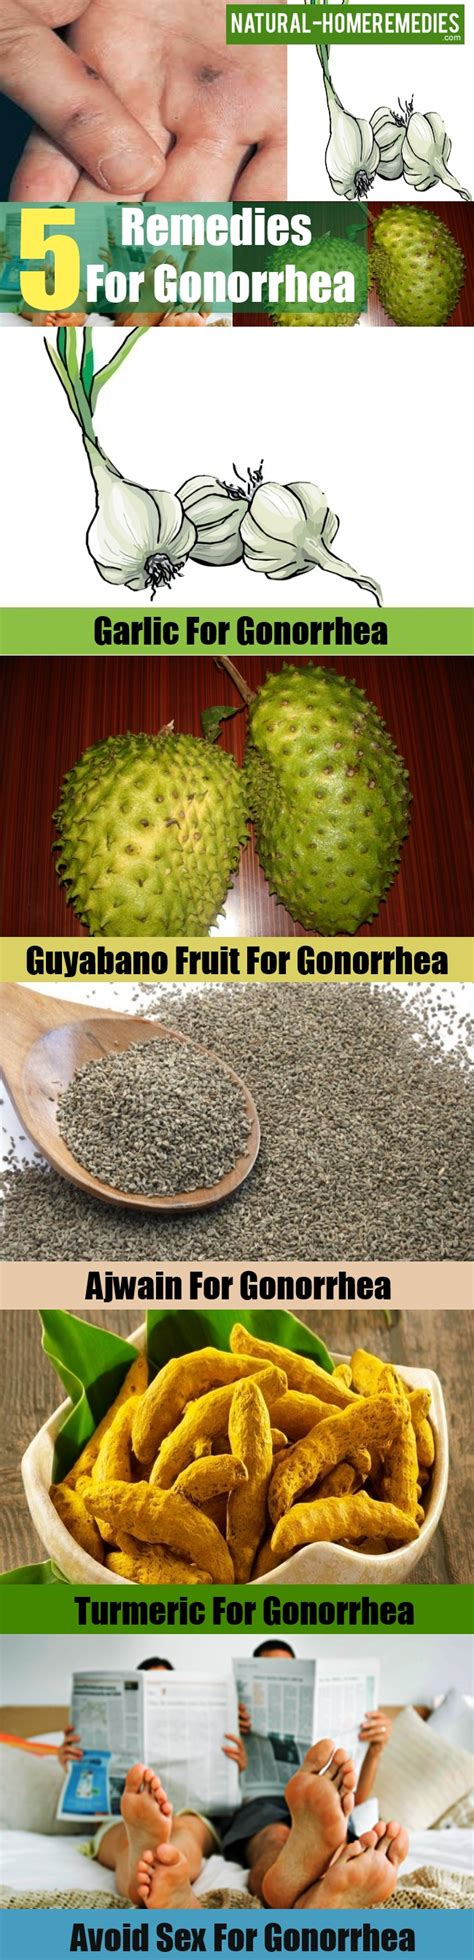 5 home remedies for gonorrhea treatment for